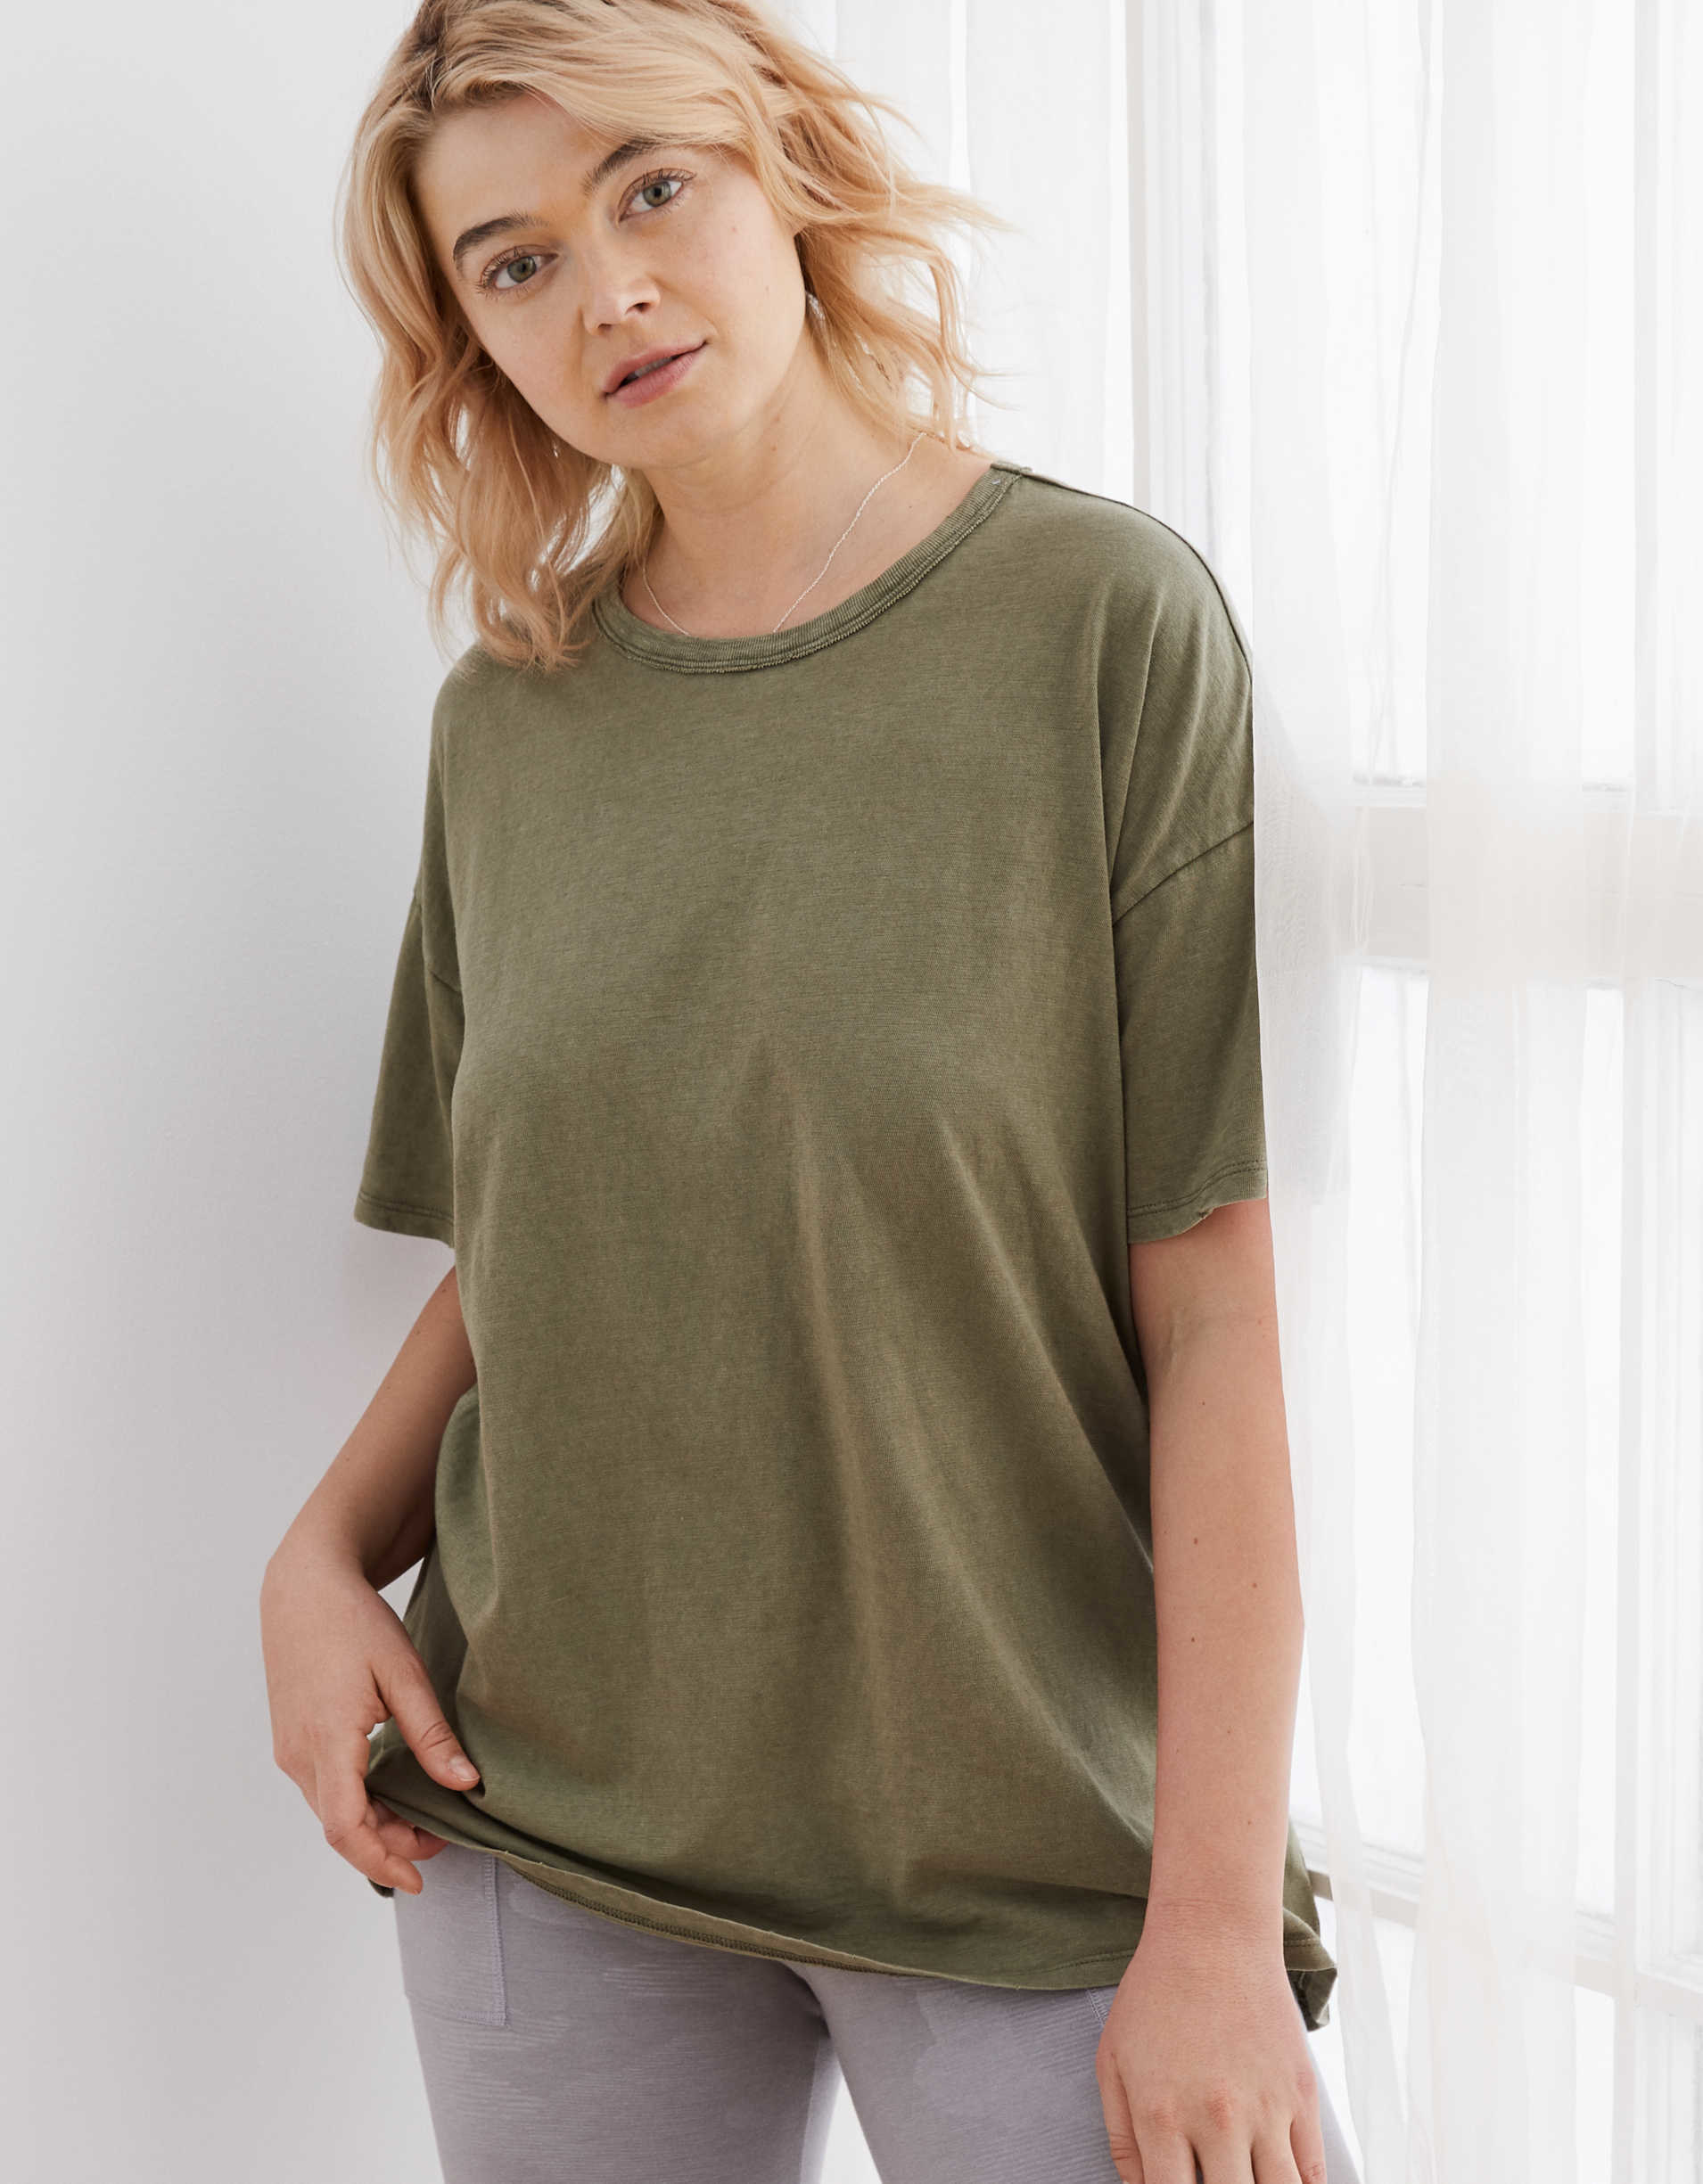 A model wear the Aerie boyfriend oversized distressed t-shirt in the color succulent olive